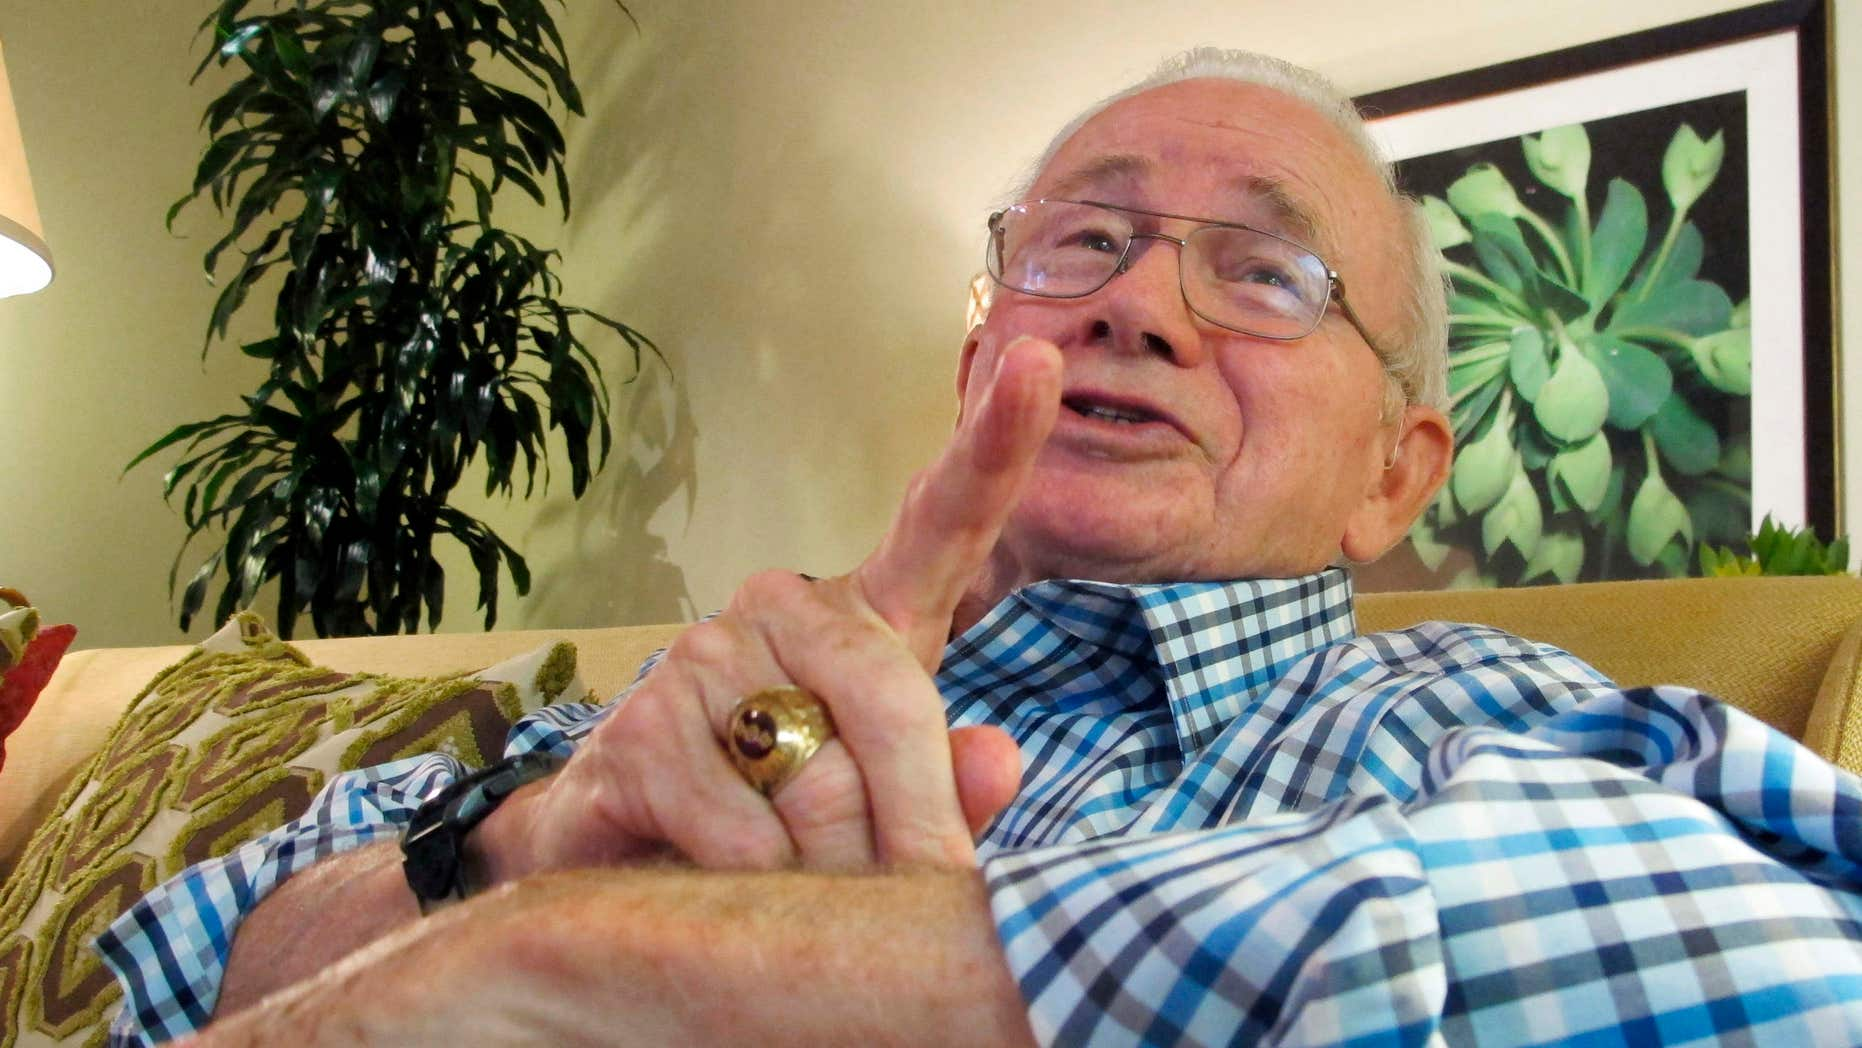 FILE - In this Nov. 26, 2013, file photo, retired Air Force Col. Thomas E. Schaefer discusses his 444 days in captivity in Iran, at his home in Scottsdale, Ariz.